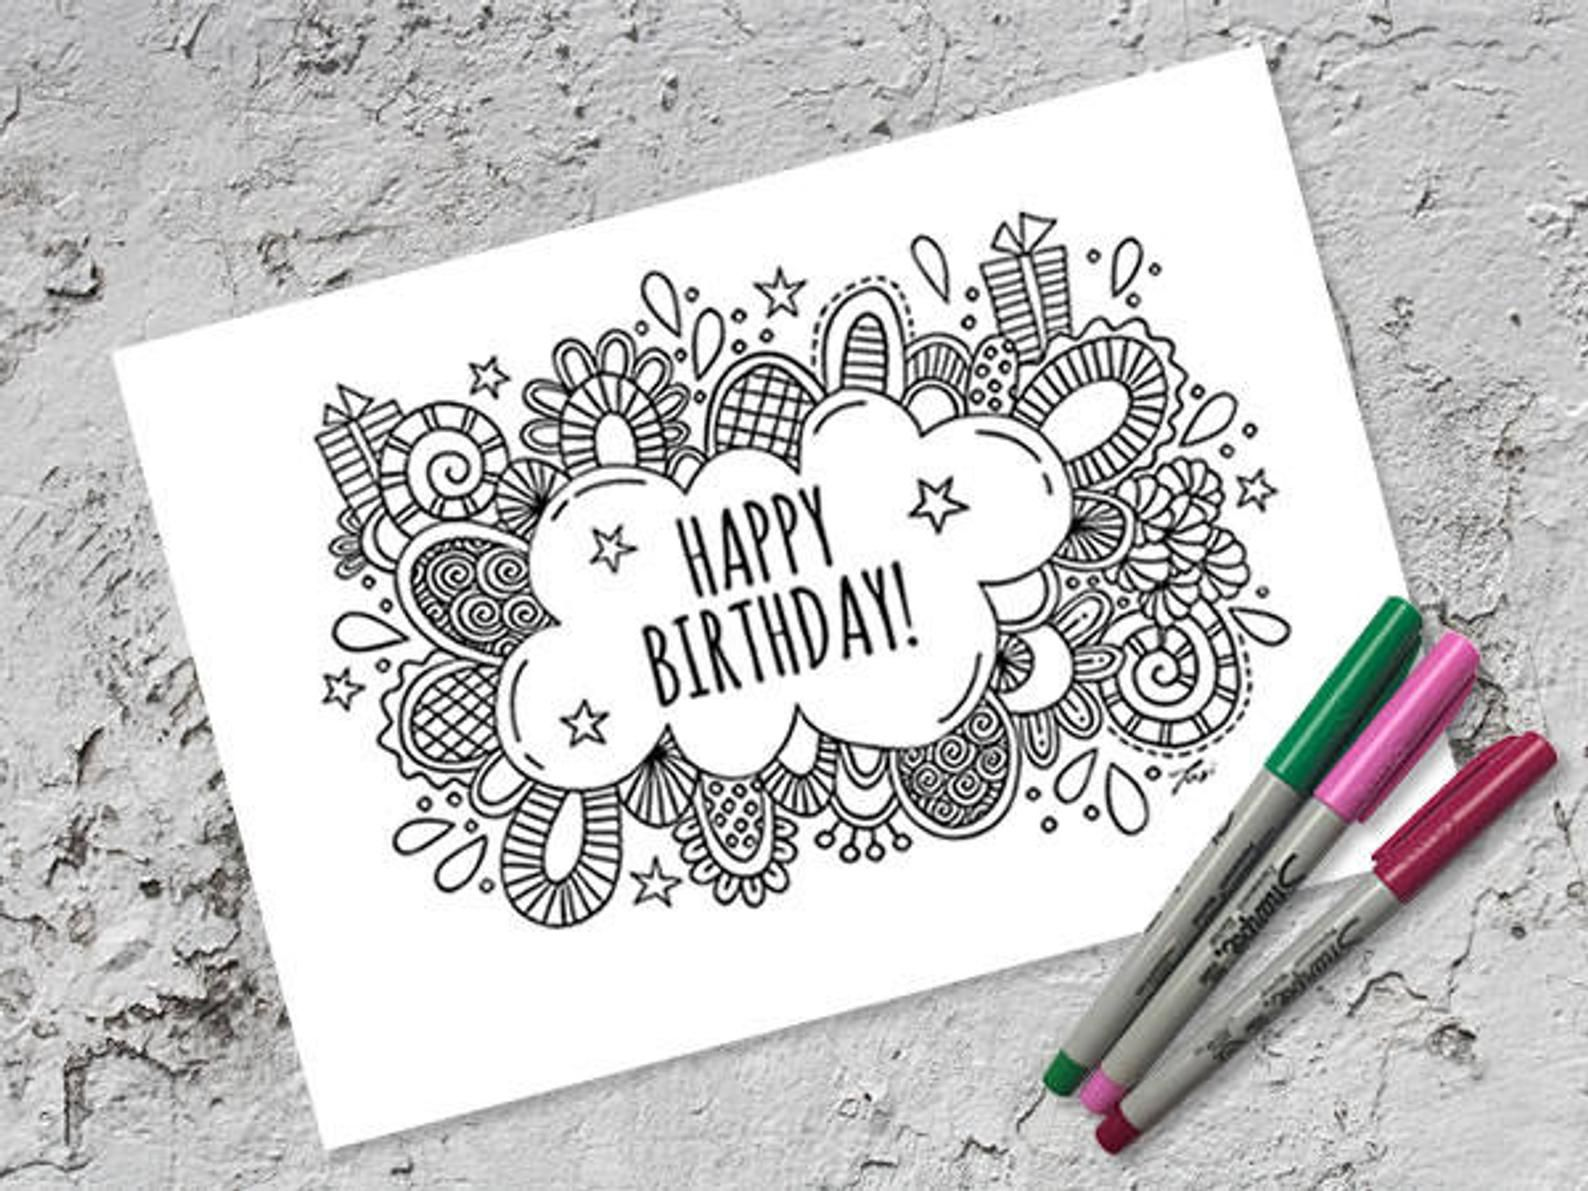 Happy Birthday Colouring Page Folded Card Instant Digital Download Original Doodle Design Happy Birthday Coloring Pages Birthday Coloring Pages Happy Birthday Drawings